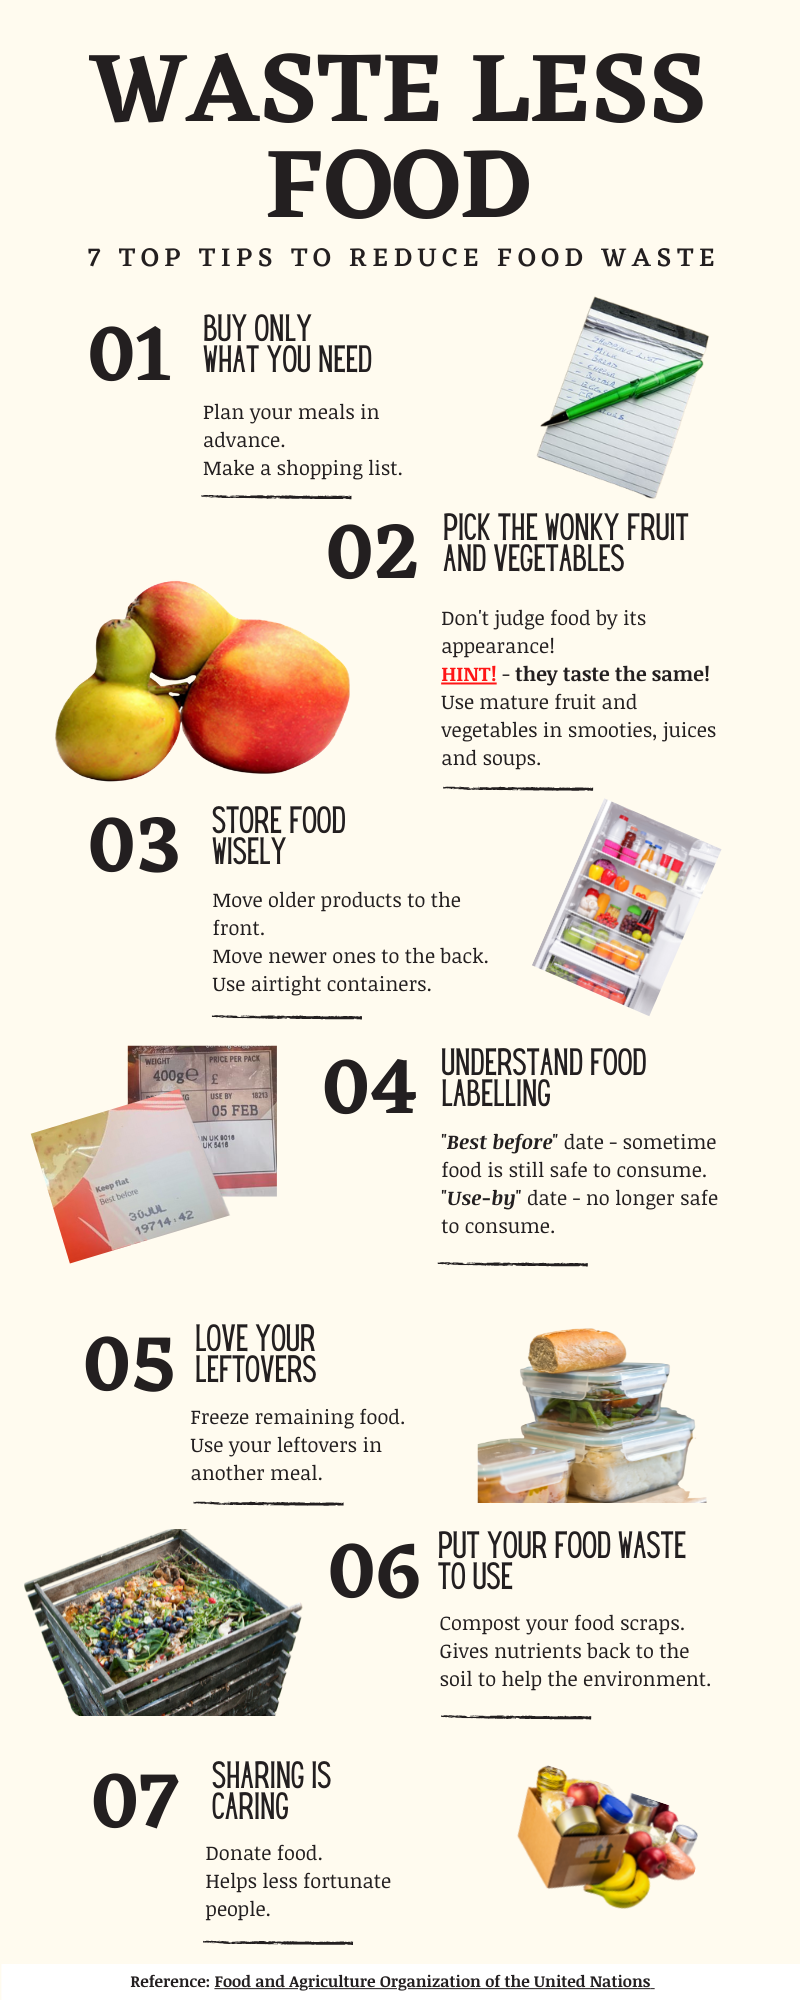 """Plan your meals in advance and make a shopping list and stick to it, to avoid any impulsive purchasing. Don't judge food by it's appearance! Wonky shaped or bruised fruits and vegetables are often thrown away as they don't meet the cosmetic standards. """"HINT!"""" - they taste the same!  Try using the mature fruit and vegetables in smoothies, juices, and soups. Move the older products to the front of your cupboards or fridge and the newer ones to the back. Also, use airtight containers to keep your food fresh in the fridge. Know the difference between """"best before"""" and """"use-by"""" dates. Sometimes food is still safe to consume after the """"best before"""" date, whereas the """"use-by"""" date tells you when it's no longer safe to eat. If you don't eat everything you make, freeze it for a later date or use your leftovers in another meal. Rather than throwing away your food scraps, compost it. To help the environment as you are giving nutrients back to the soil and reducing your carbon footprint. Donate food that would otherwise be wasted to help people who are less fortunate than you."""